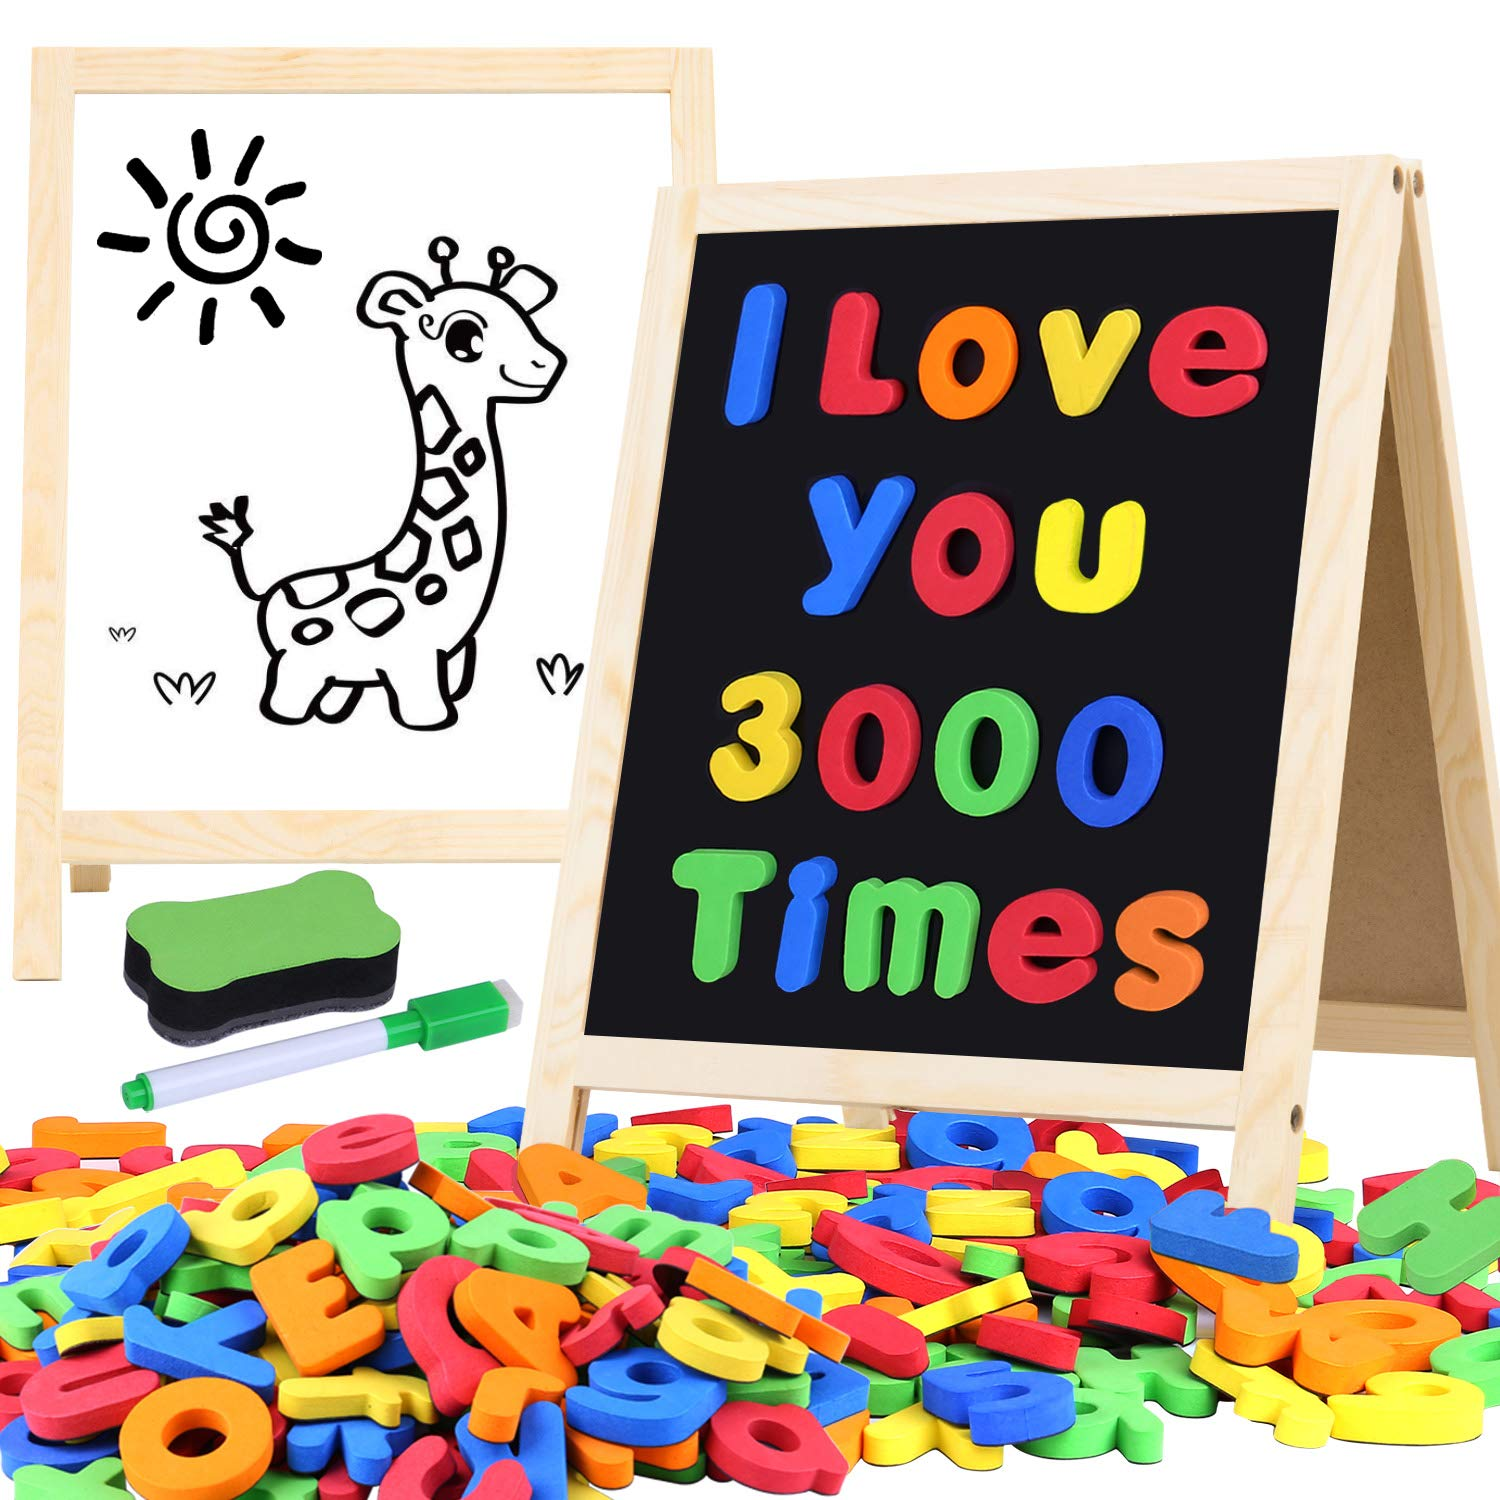 Giftinthebox Magnetic Letters and Numbers for Toddlers with Easels, 133 Pcs ABC Alphabets Magnets and Dry Erase Magnetic Double-Side Board, Kids Educational Classroom Set Preschool Learning Toys